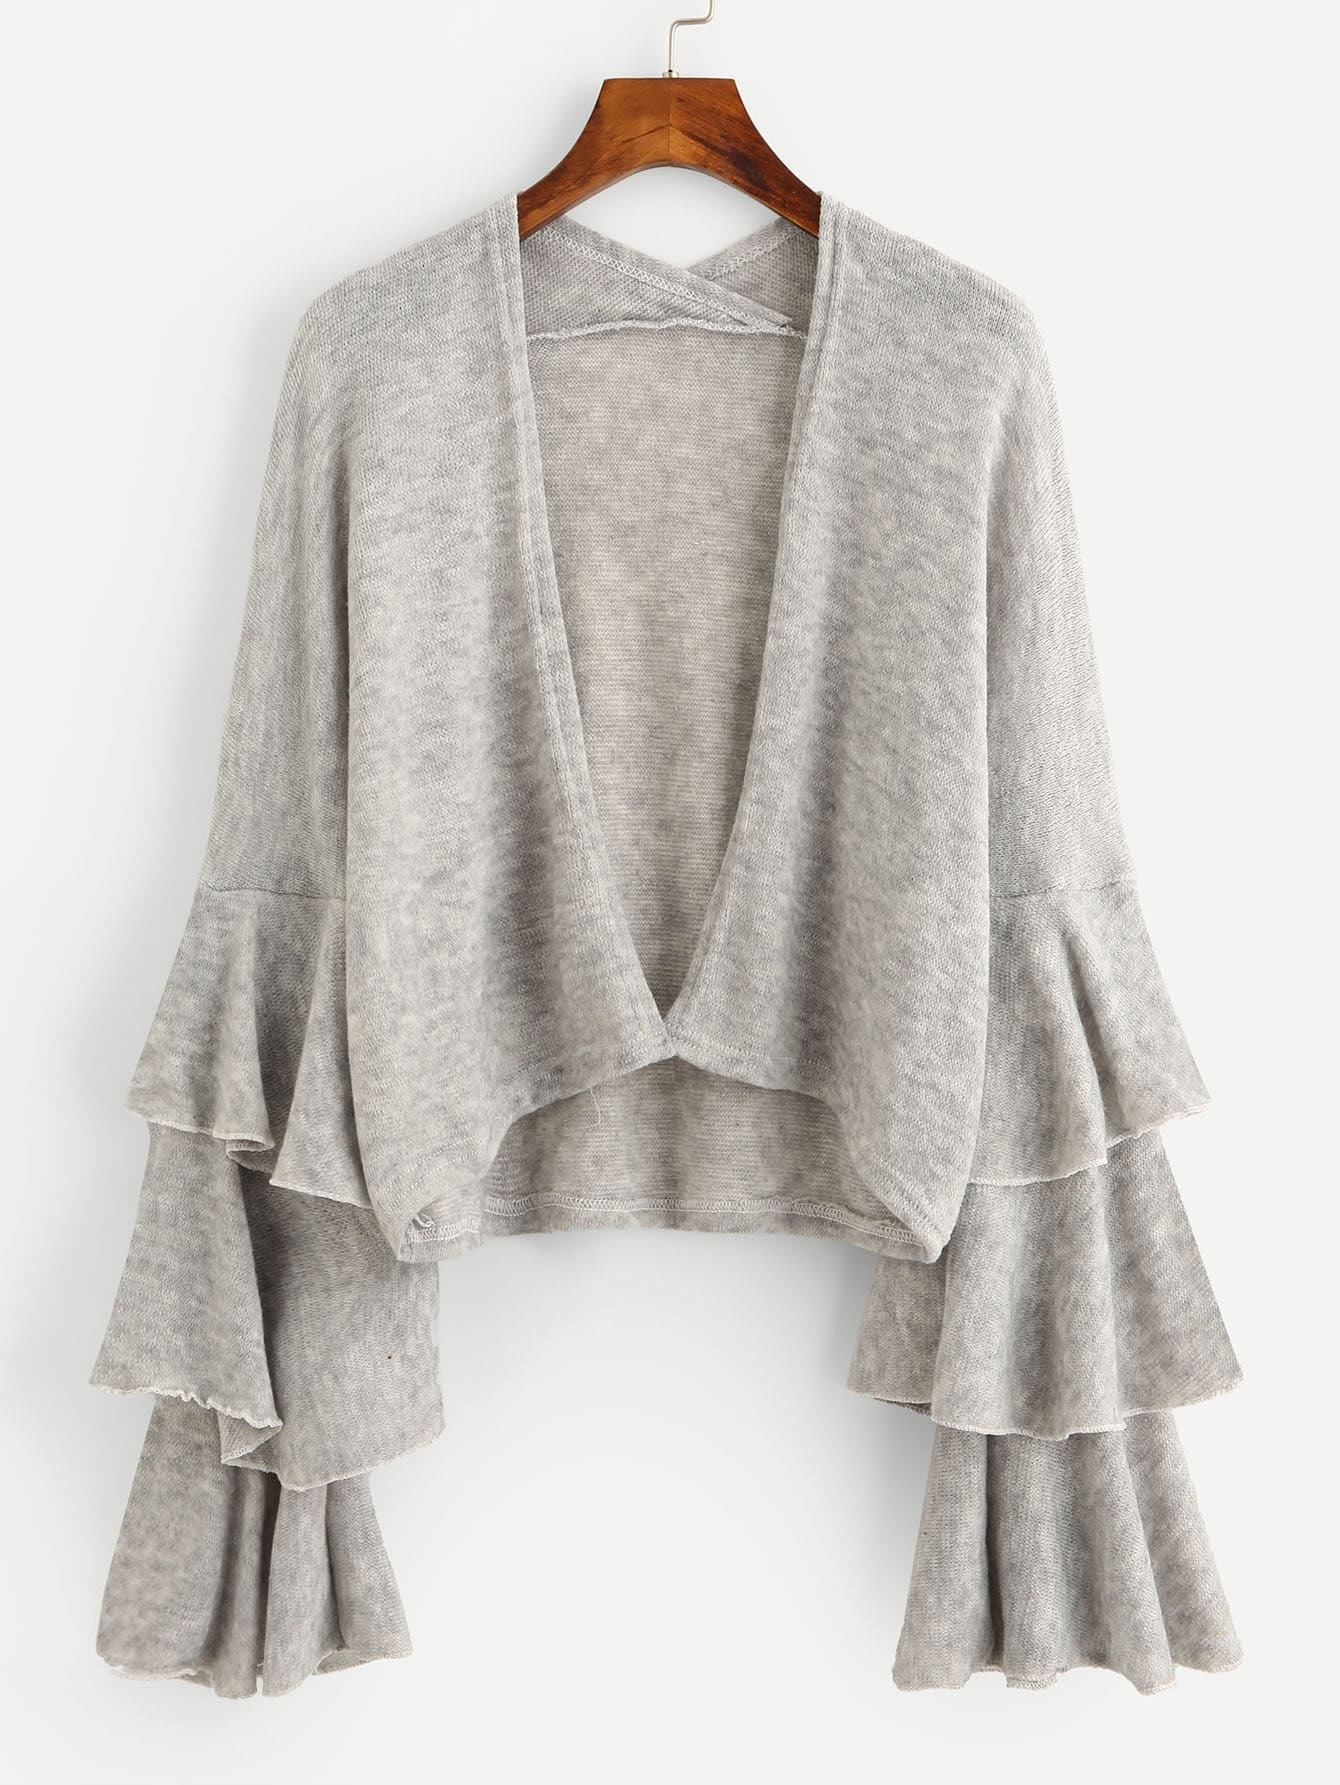 Tiered Frill Sleeve Open Front Knit Sweater Cardigan open knit long sweater